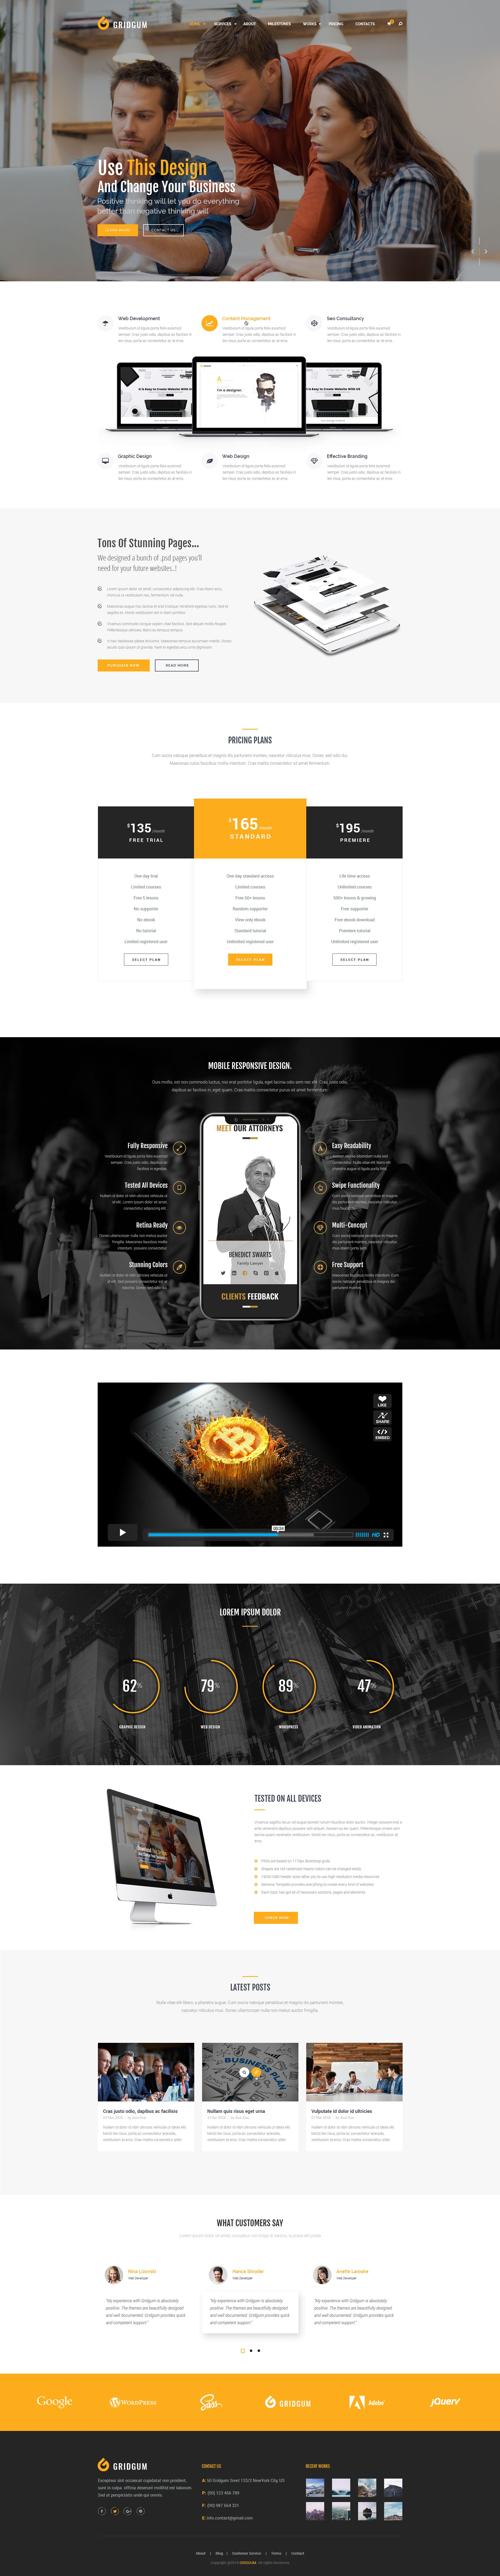 Free Psd Photoshop Website Template Free For Download For